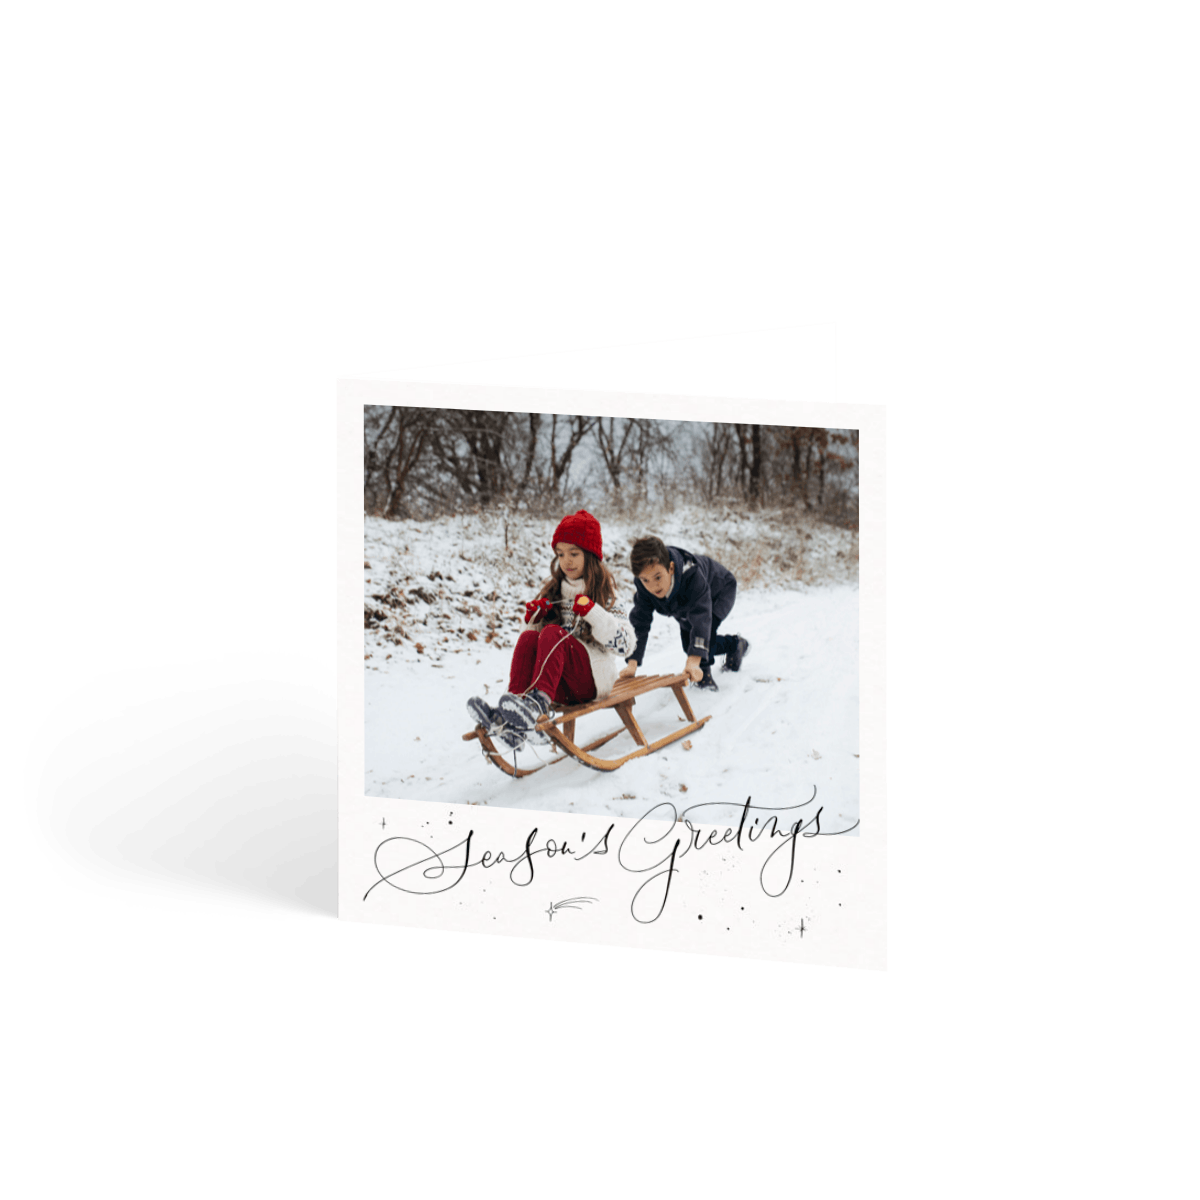 Https%3a%2f%2fwww.papier.com%2fproduct image%2f26990%2f16%2fseason s greetings starry photo 6738 front 1509645409.png?ixlib=rb 1.1